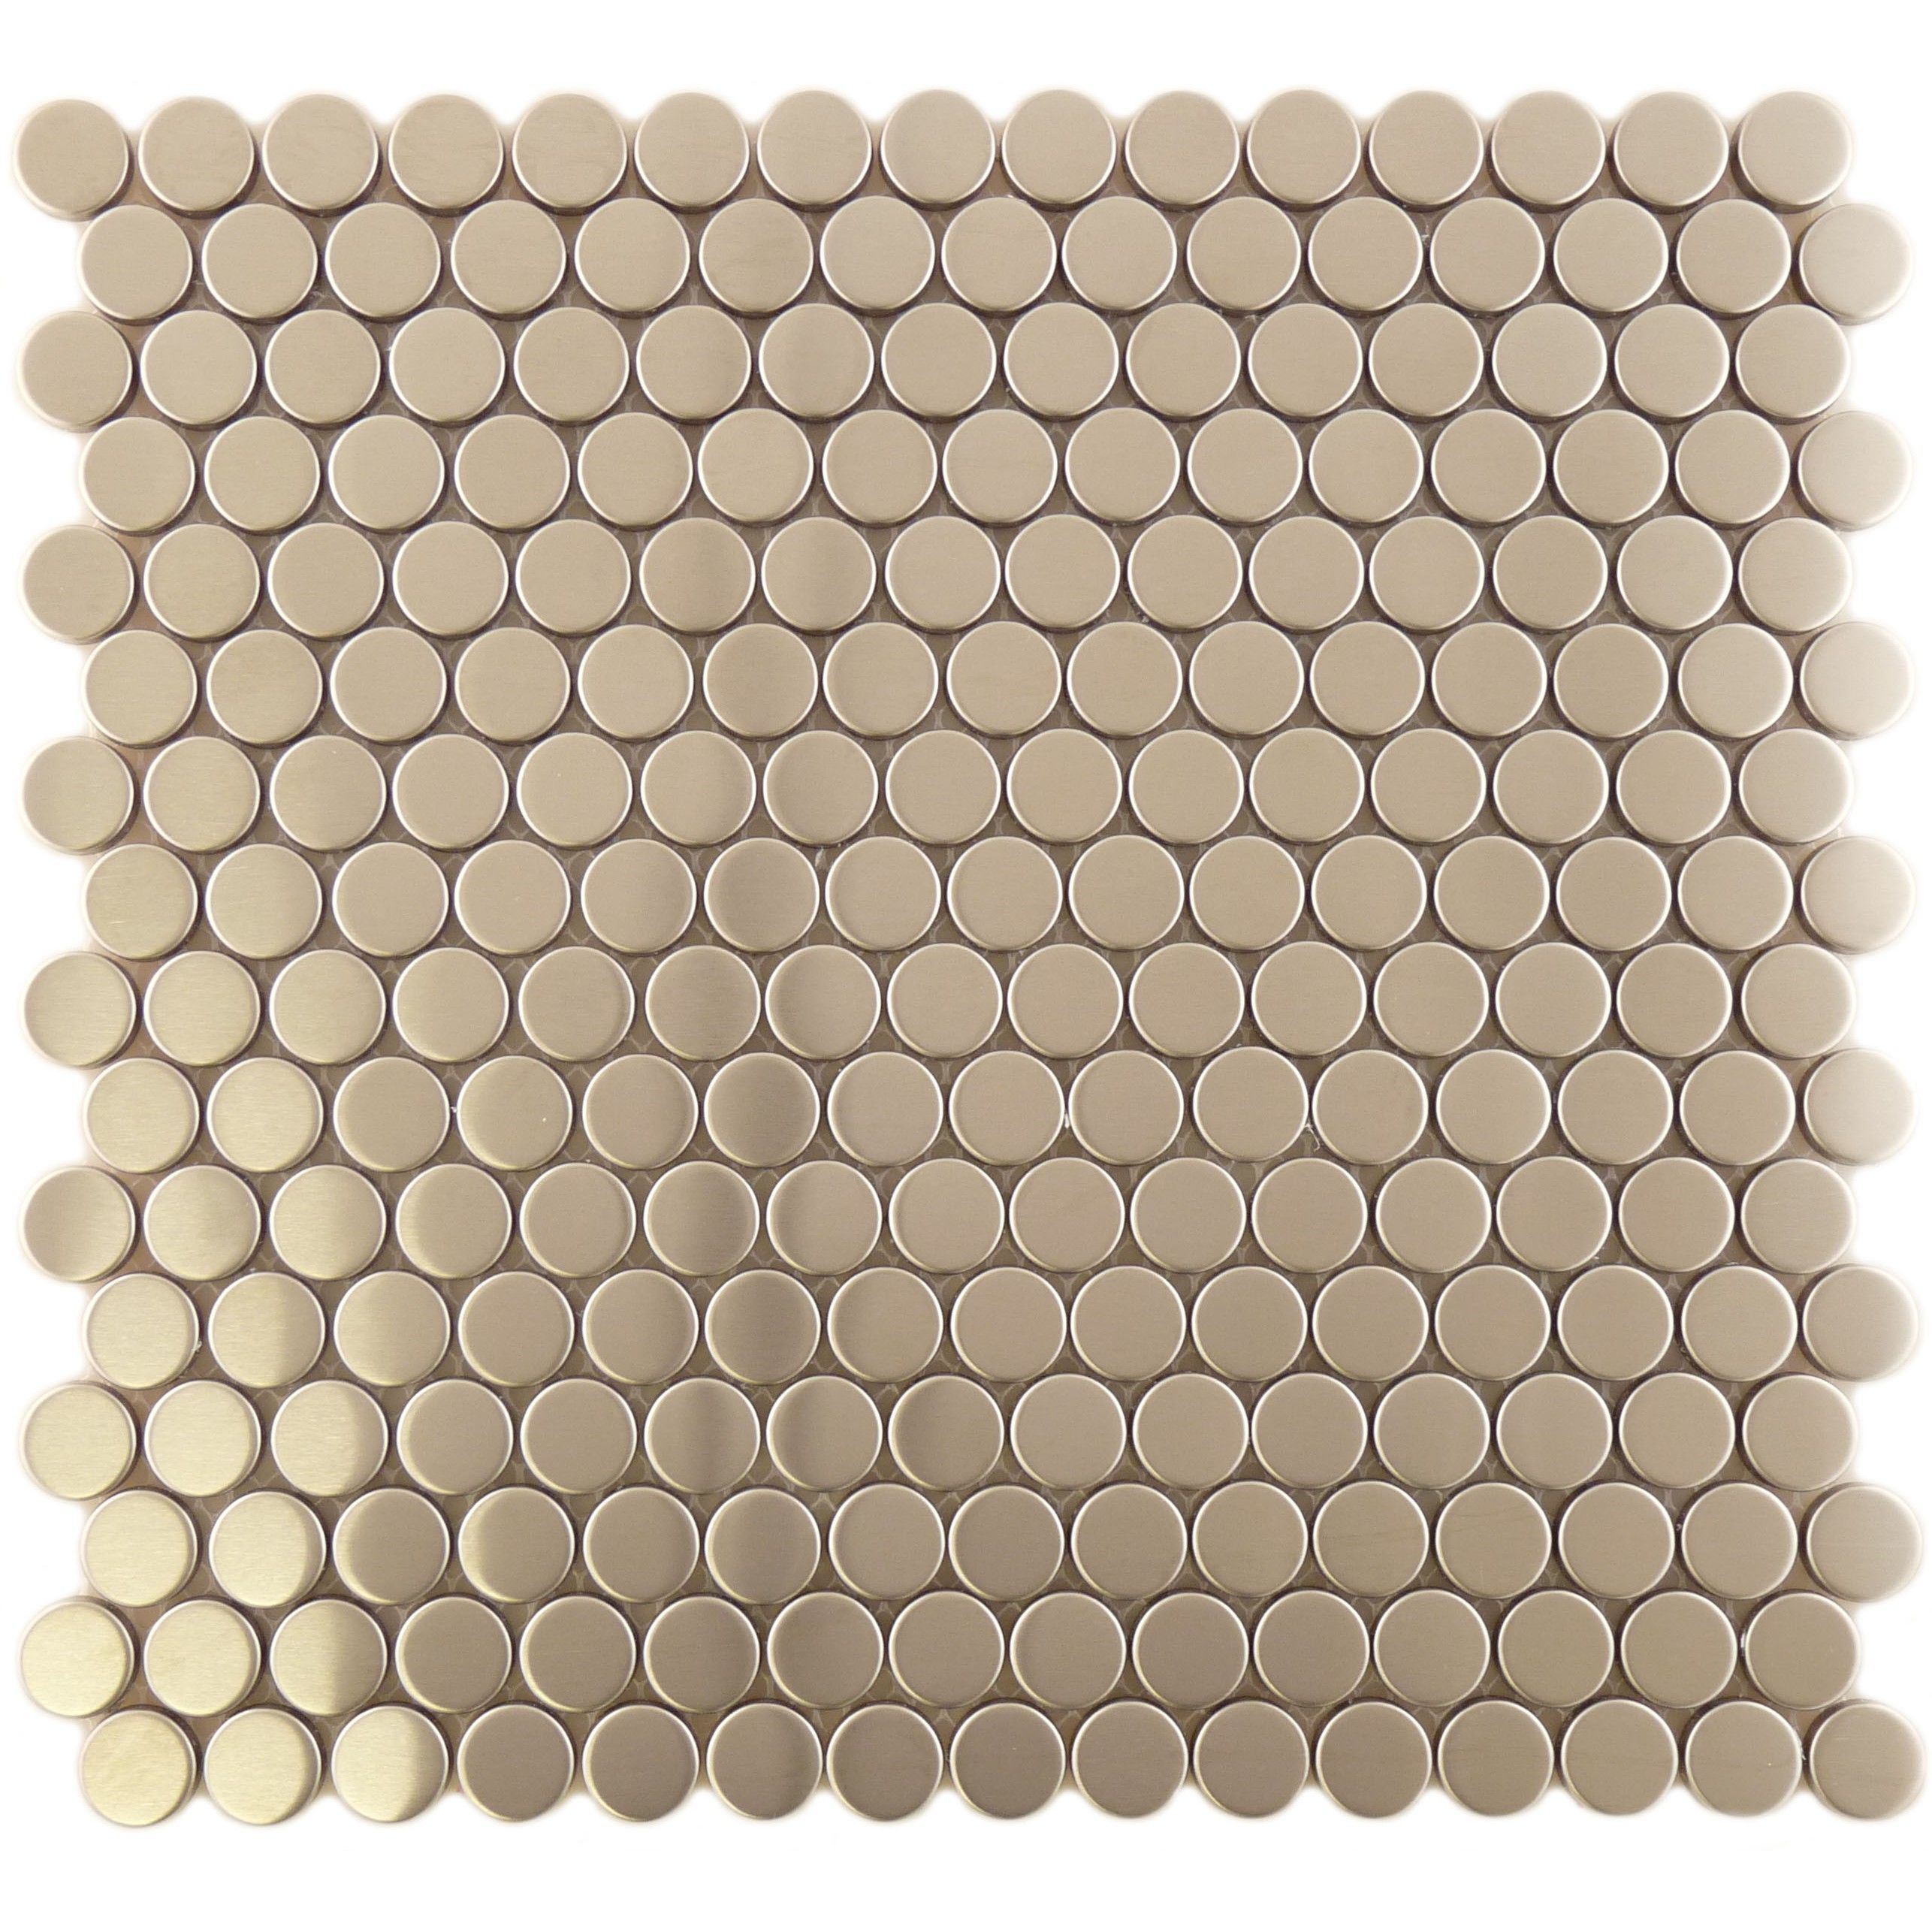 Sheet Size 11 3 X2f 8 Quot X 12 Quot Tile Size 8 X 20 Mm Diameter Tiles Per Sheet 240 Tile Metal Tile Backsplash Tiles Stainless Steel Tile